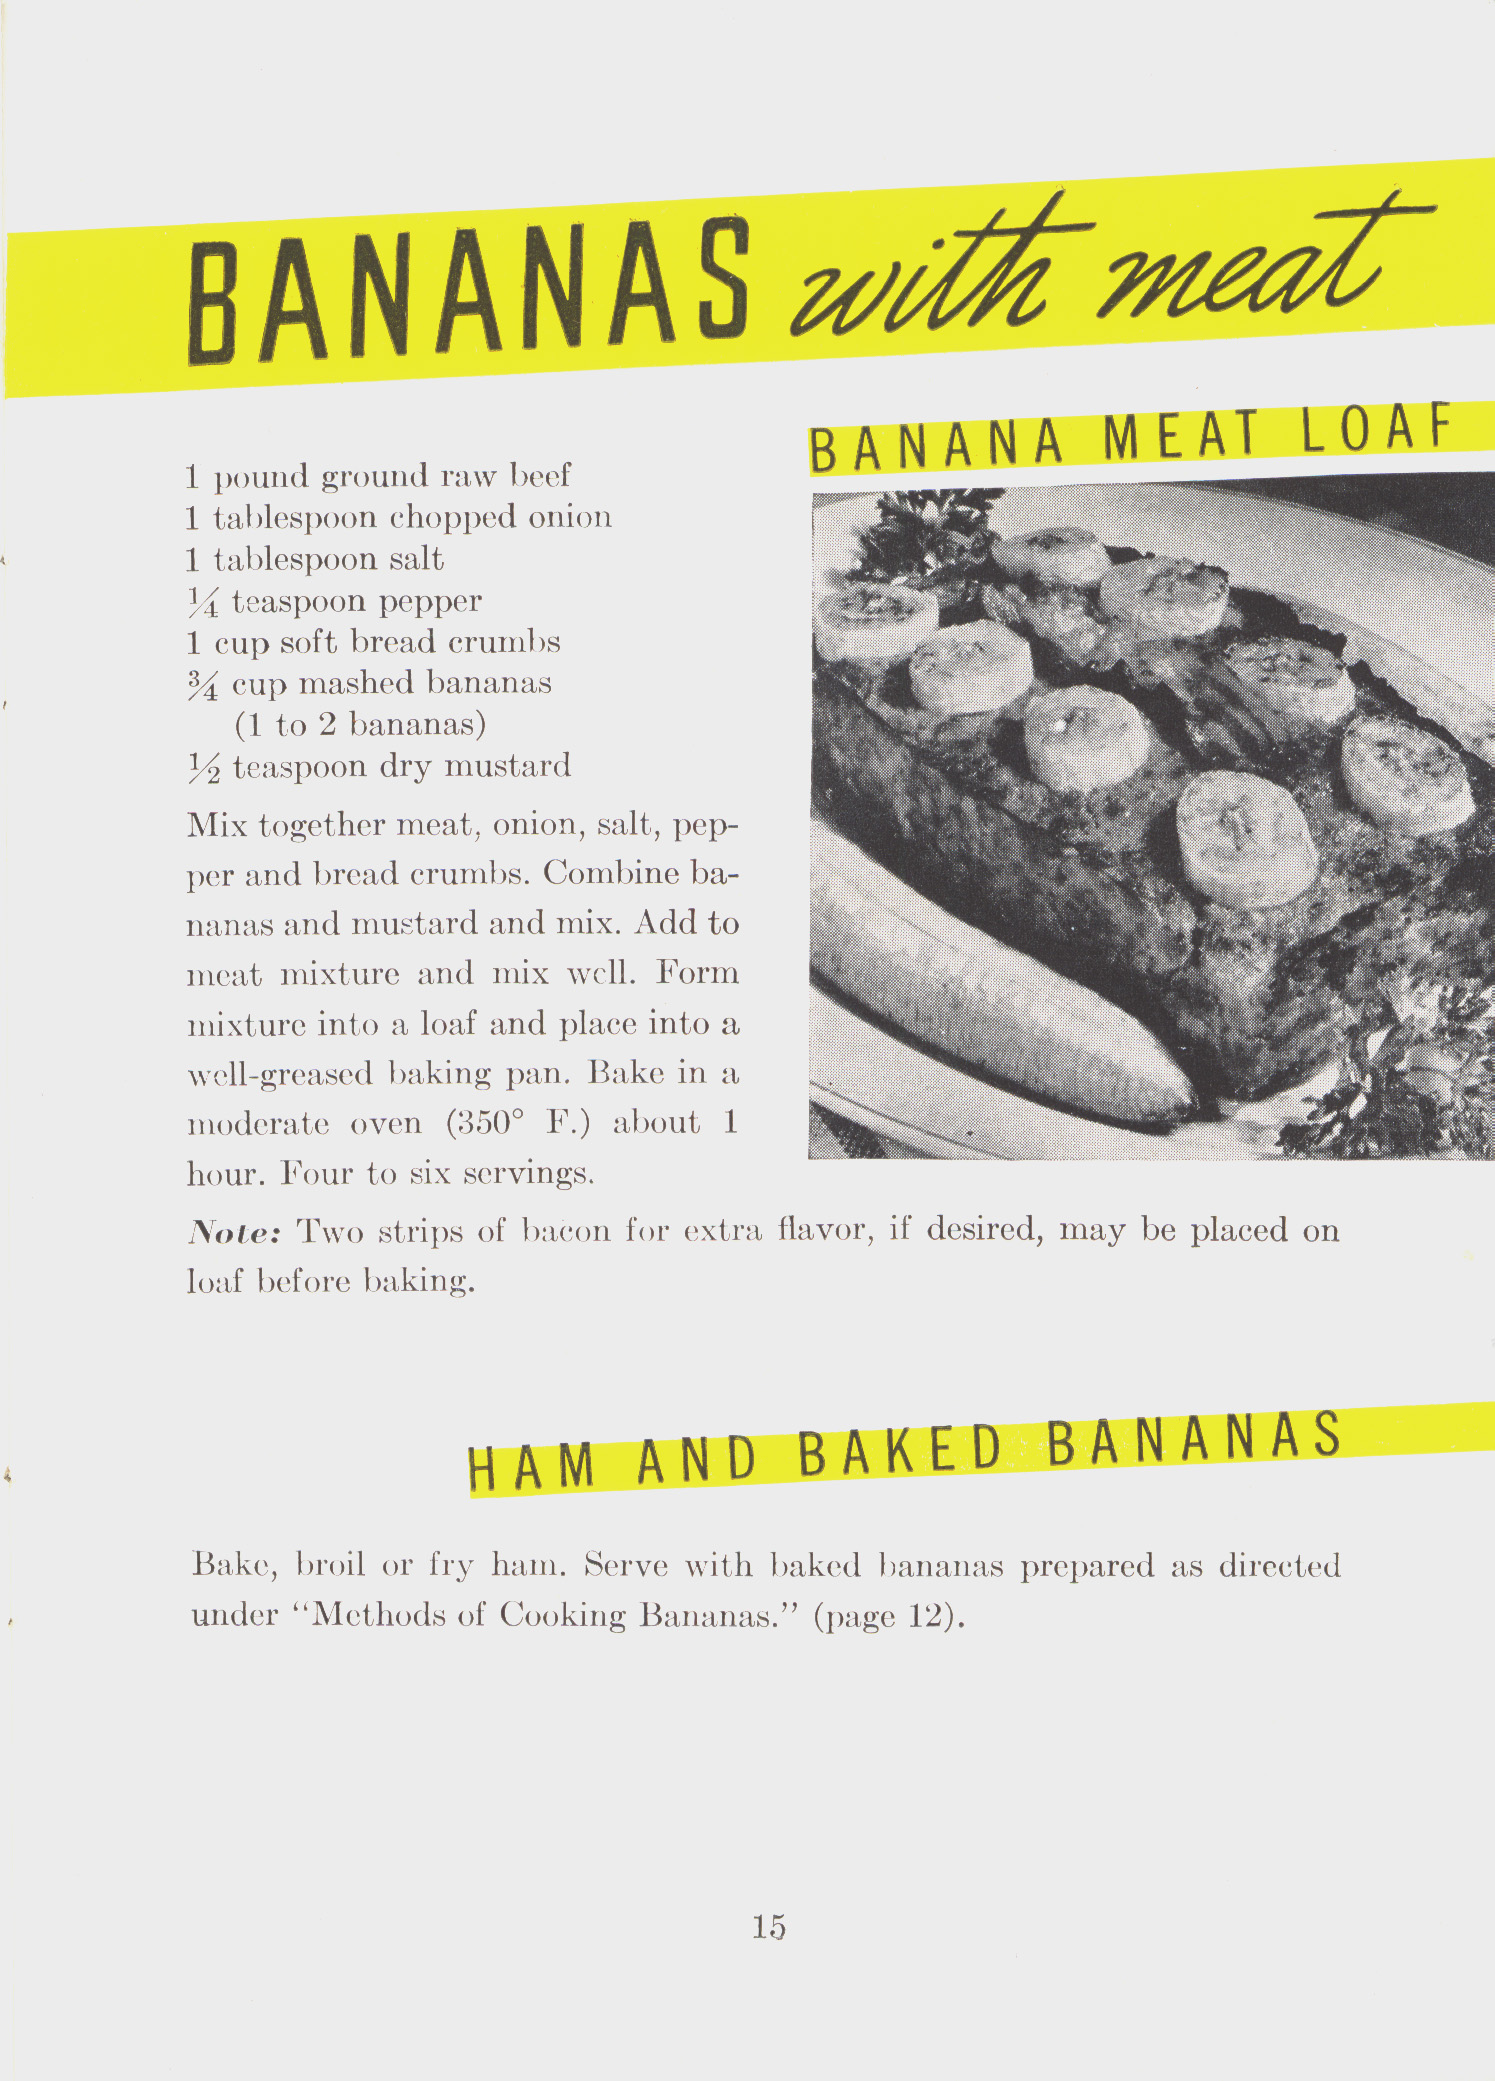 Recipe booklet, WPA Federal Writers' Project collection, NYC Municipal Archives.